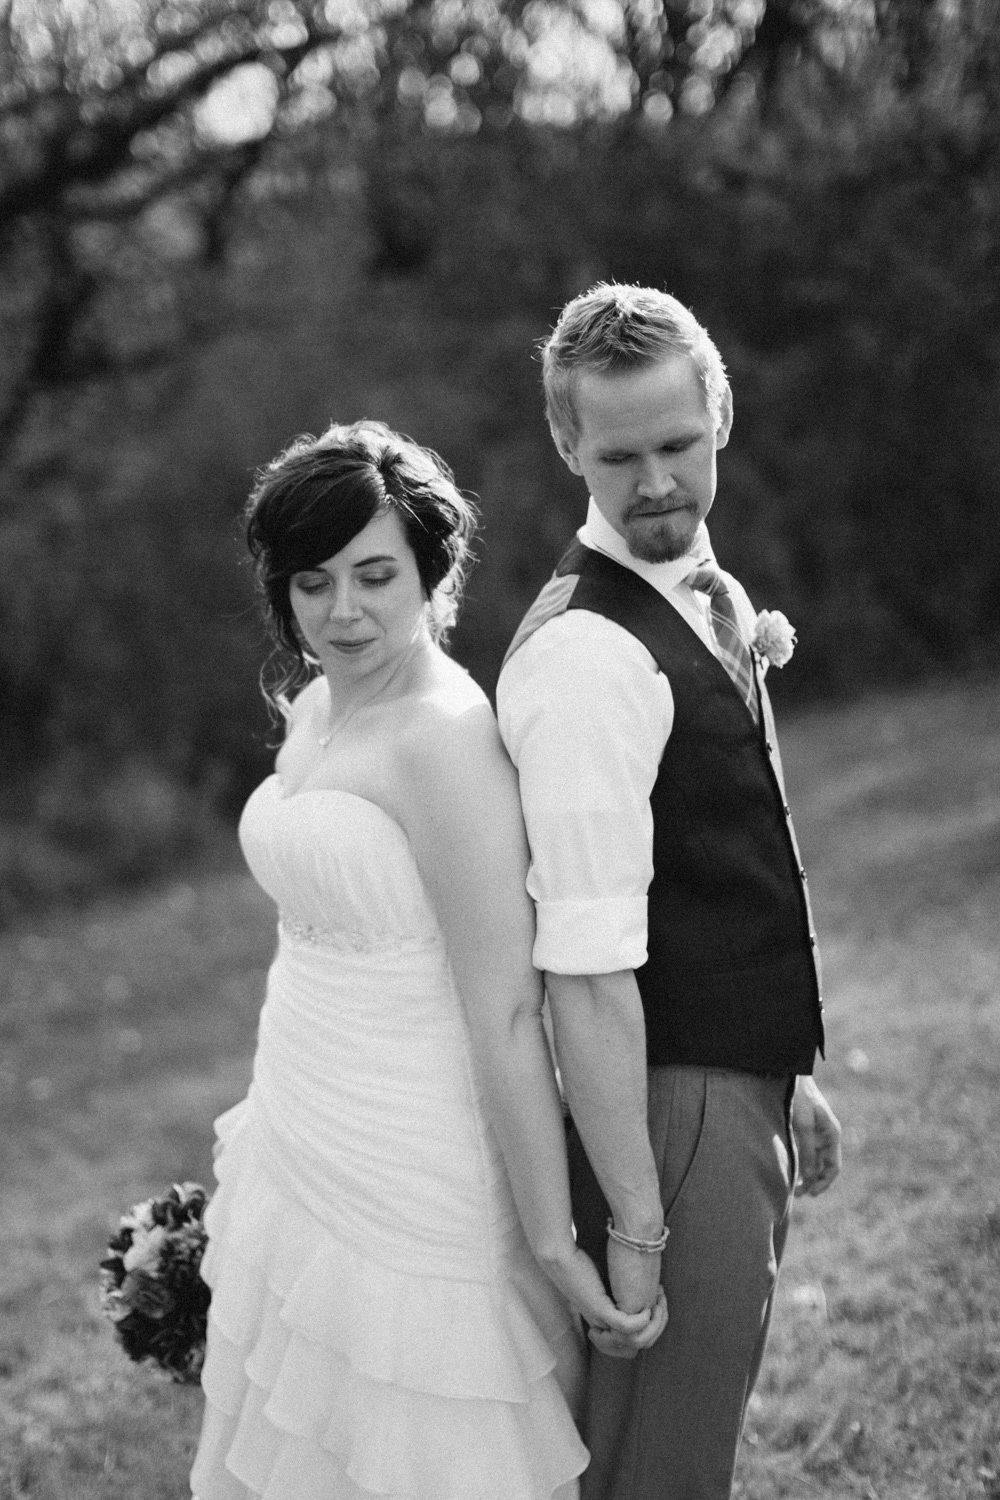 DesMoines_Wedding_Photographer_Spencer&Amanda_104.jpg